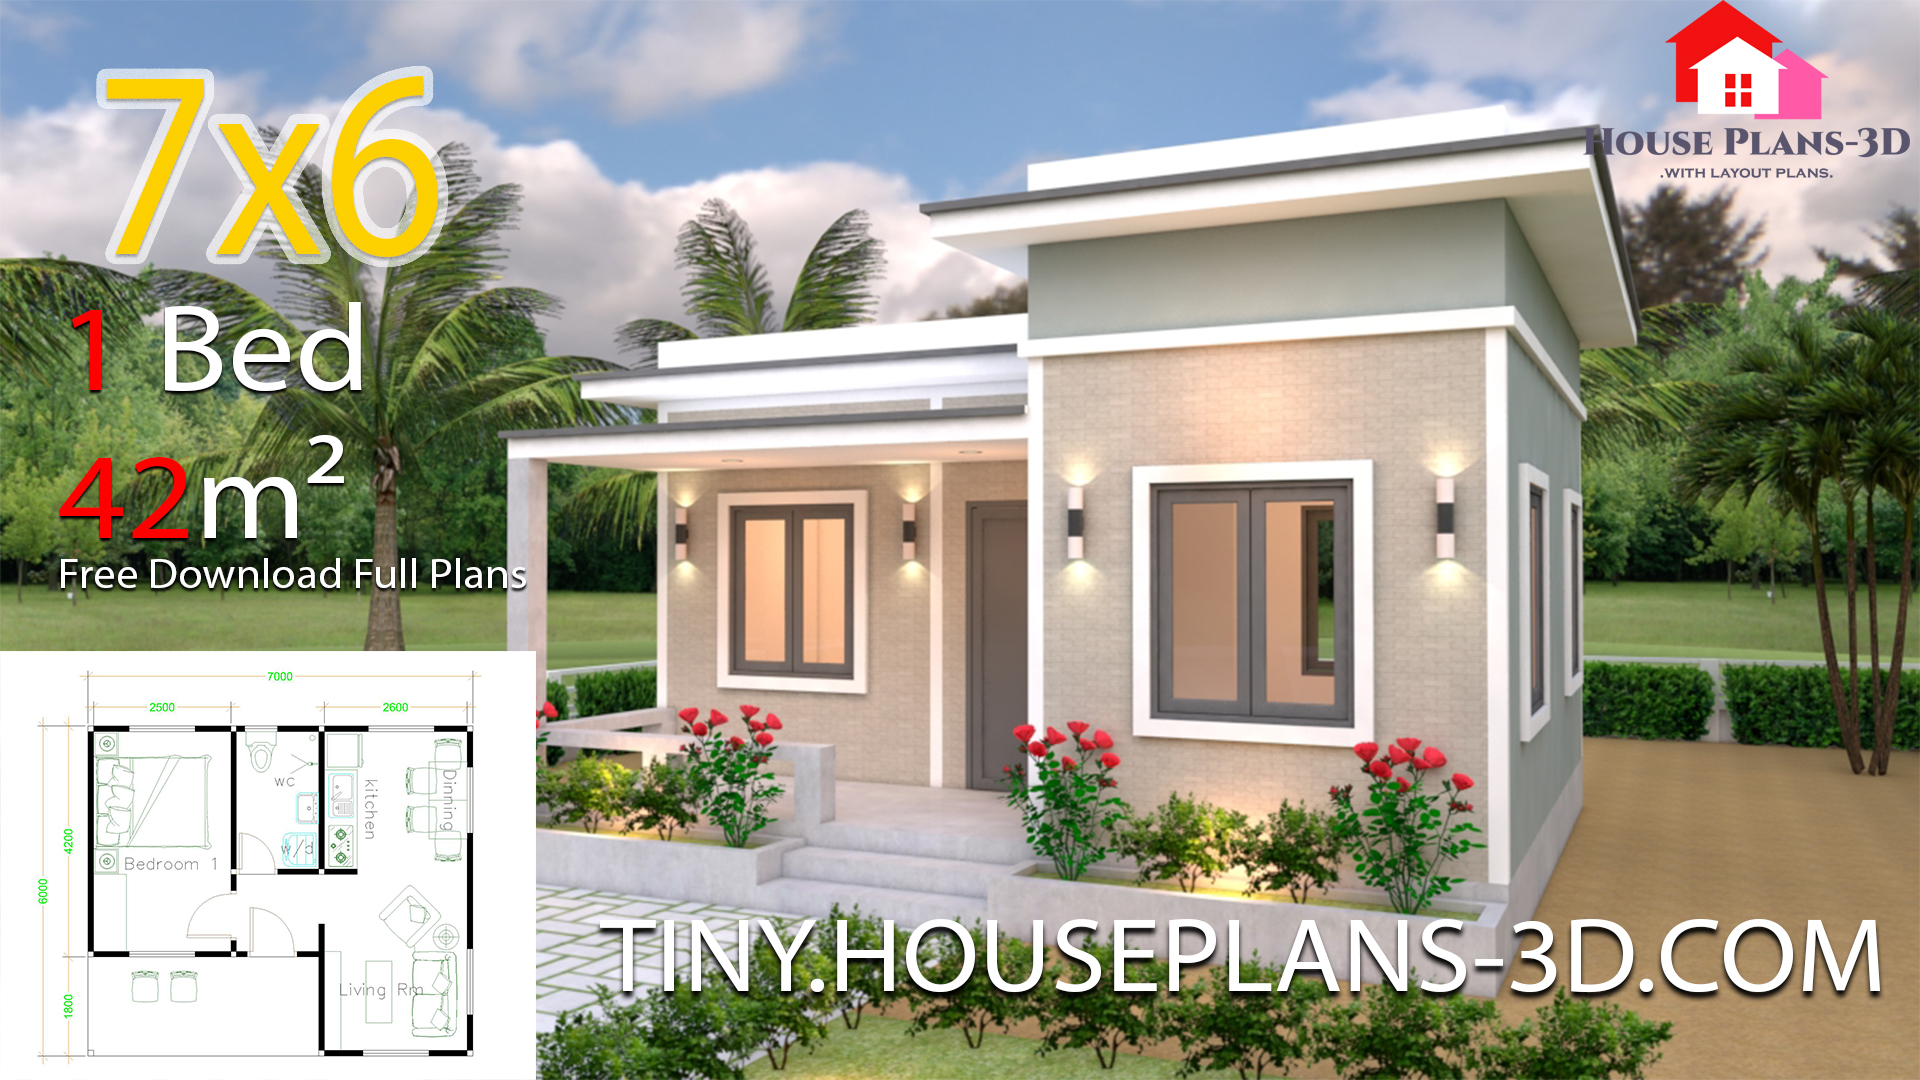 Tiny House Plans 7x6 With One Bedroom Flat Roof Tiny House Plans